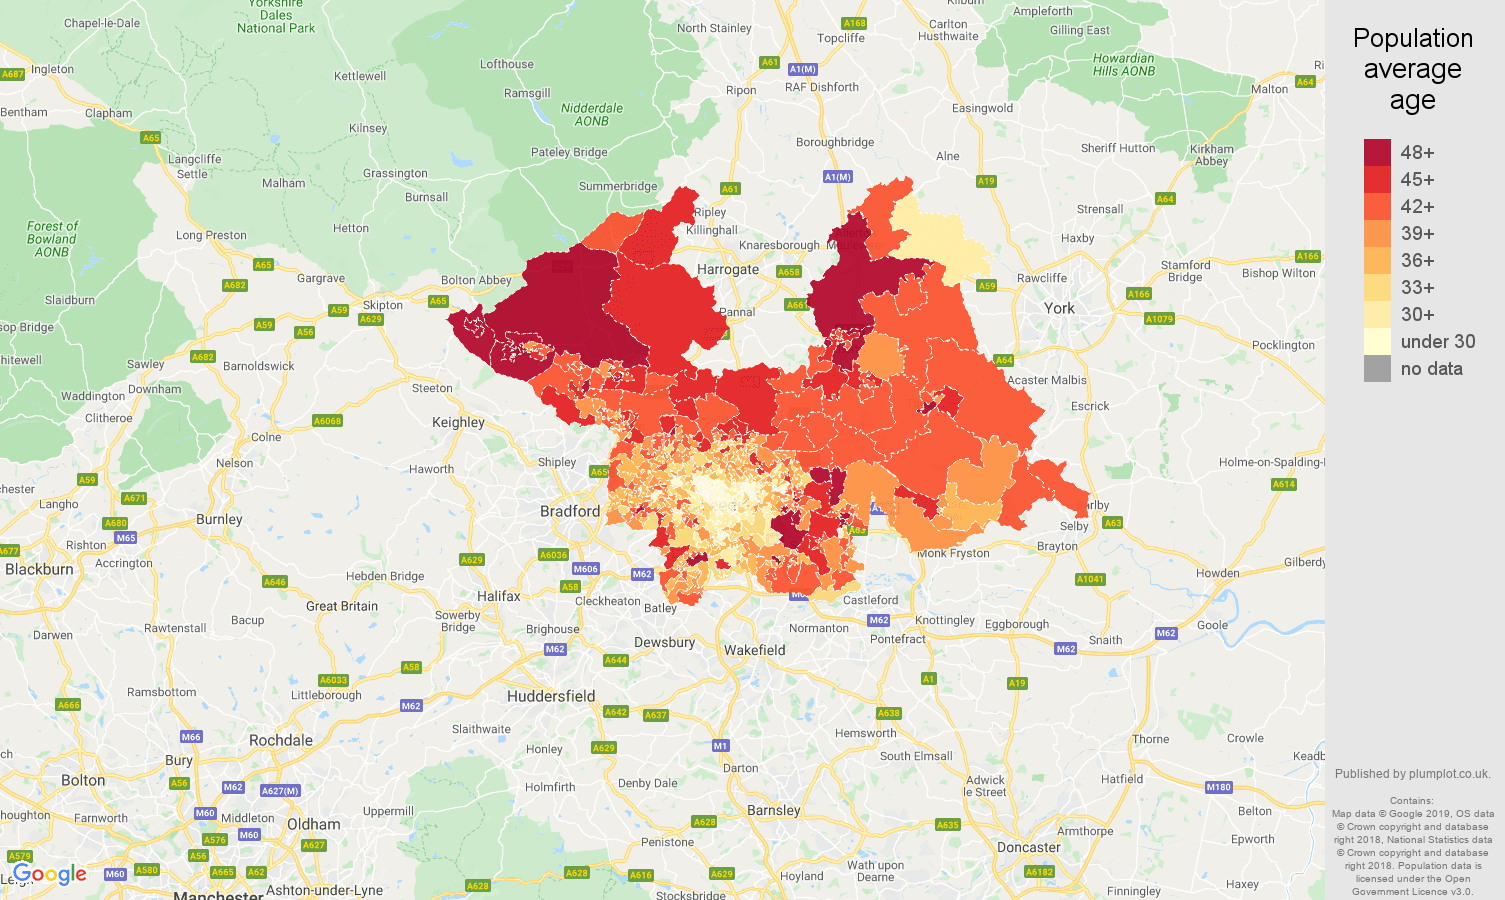 Leeds population average age map